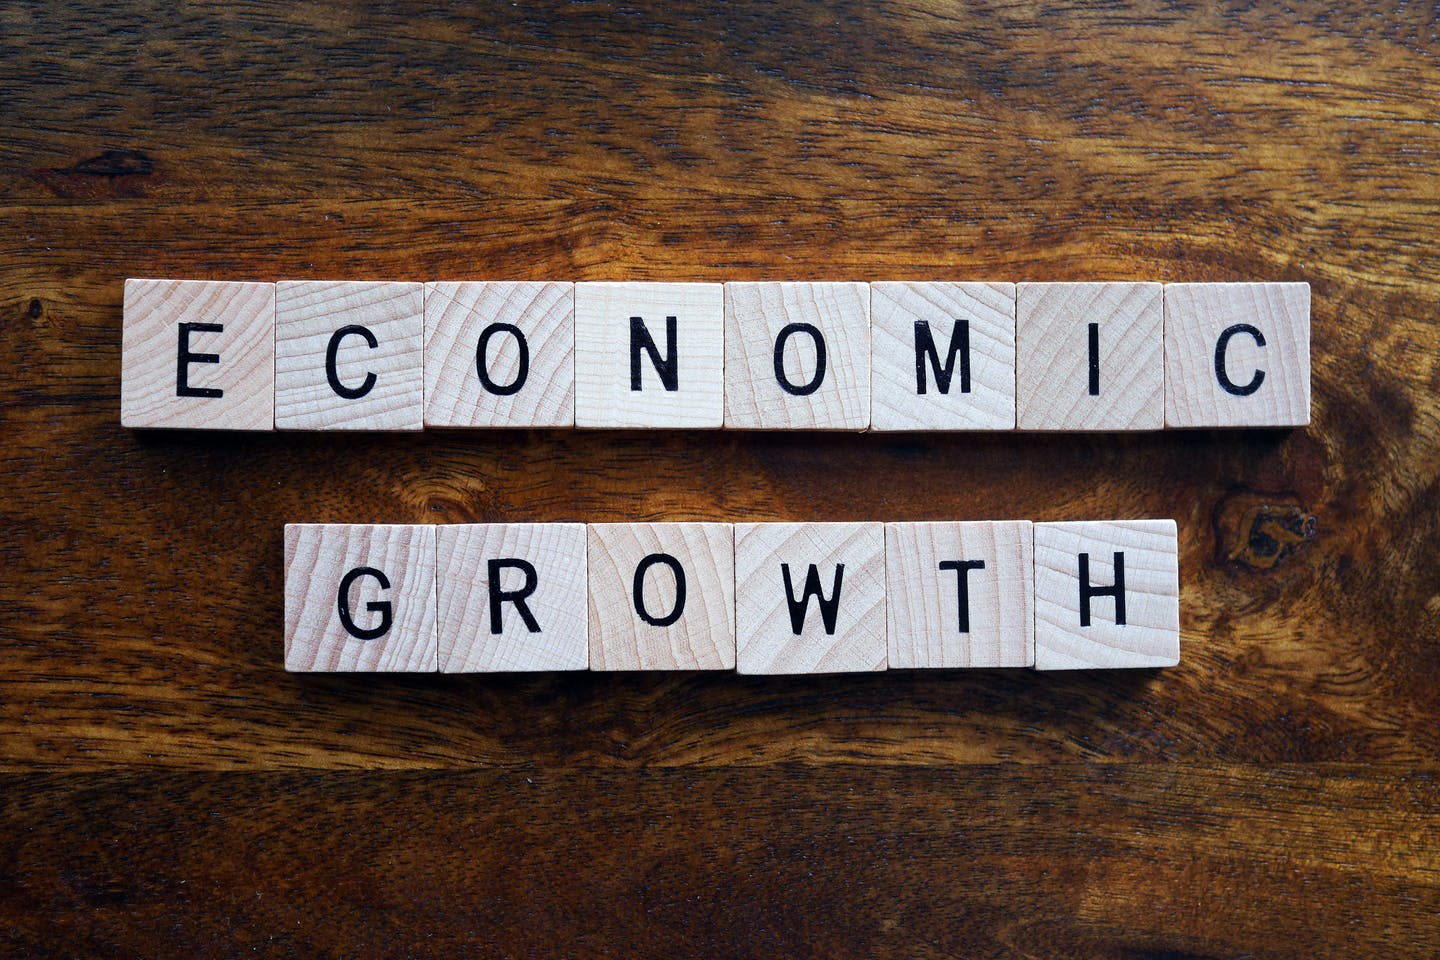 Economic growth spelled out in Scrabble tiles